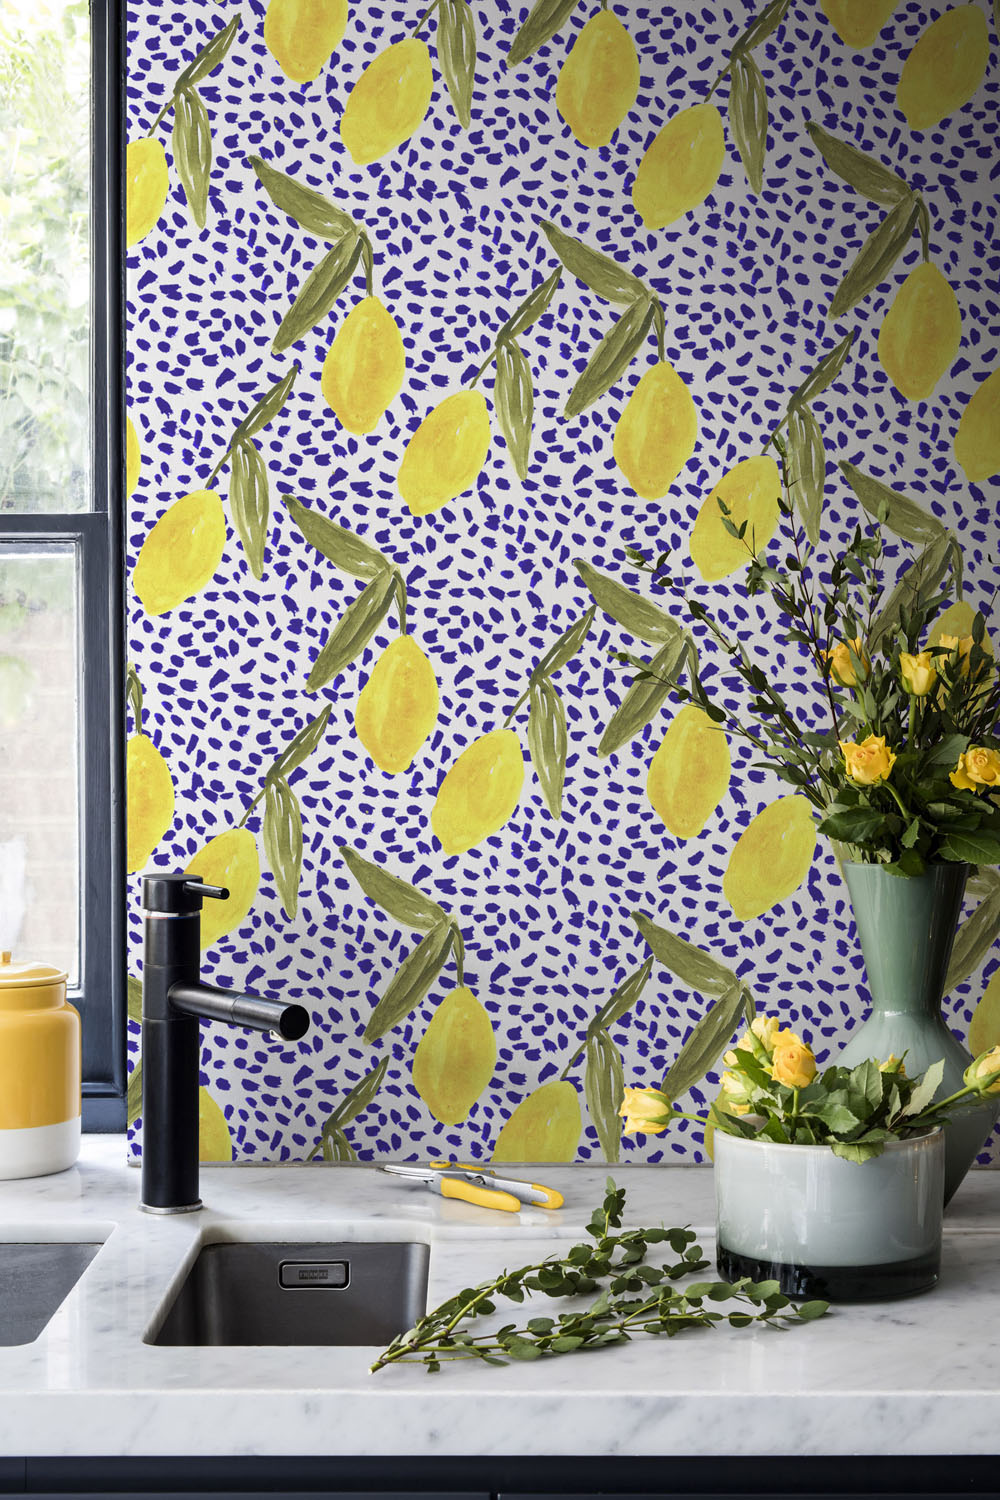 Lemon and Dots Mural by Kendra Dandy from Bouffants and Broken Hearts Collection